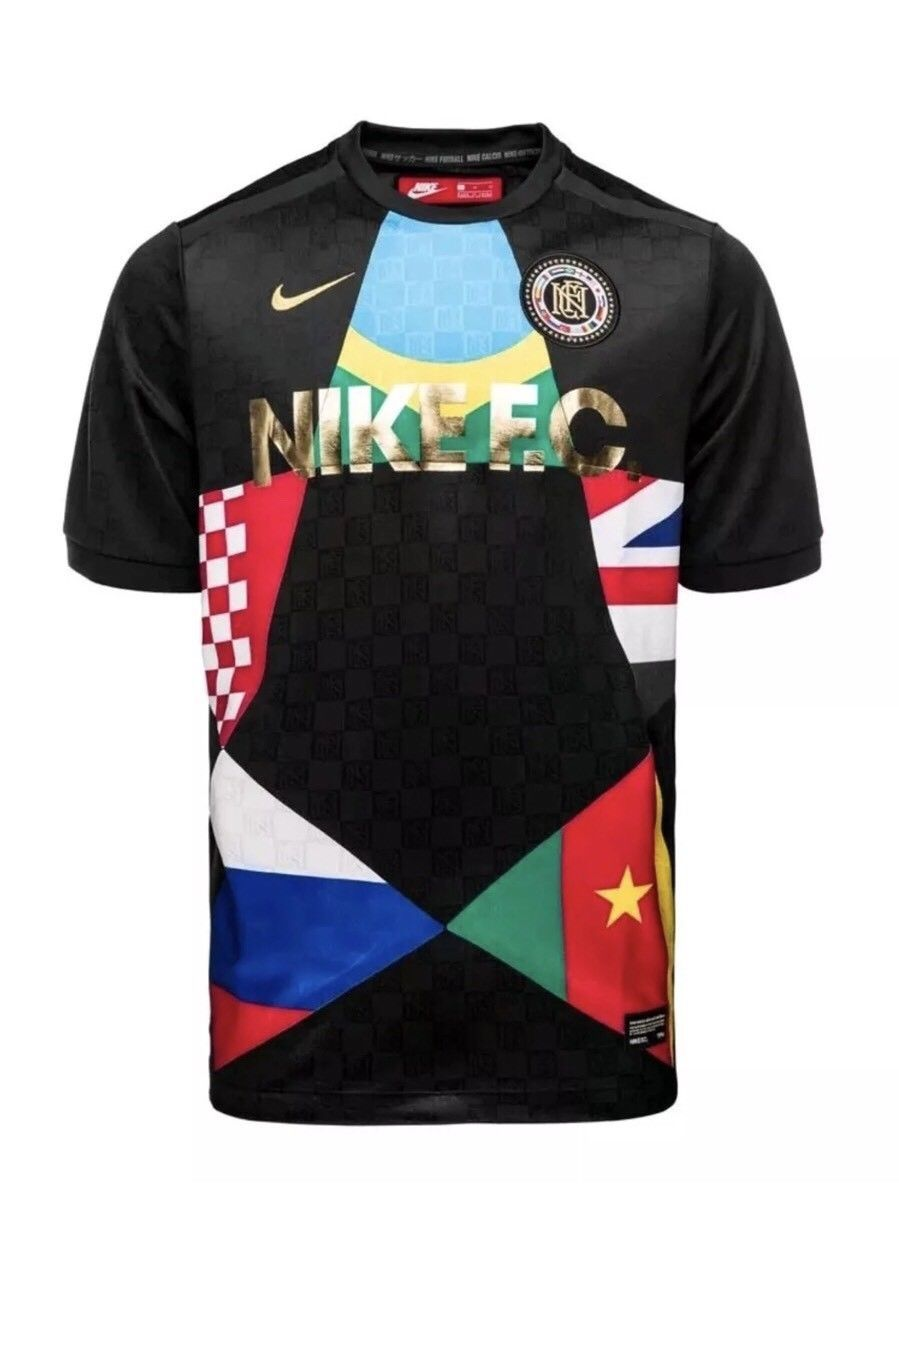 NIKE F.C. Football WORLD CUP 2018 SOCCER JERSEY BLACK MENS SZ 2XL XXL 886872-014  Discount Price 74.39 Free Shipping Buy it Now 16122a149